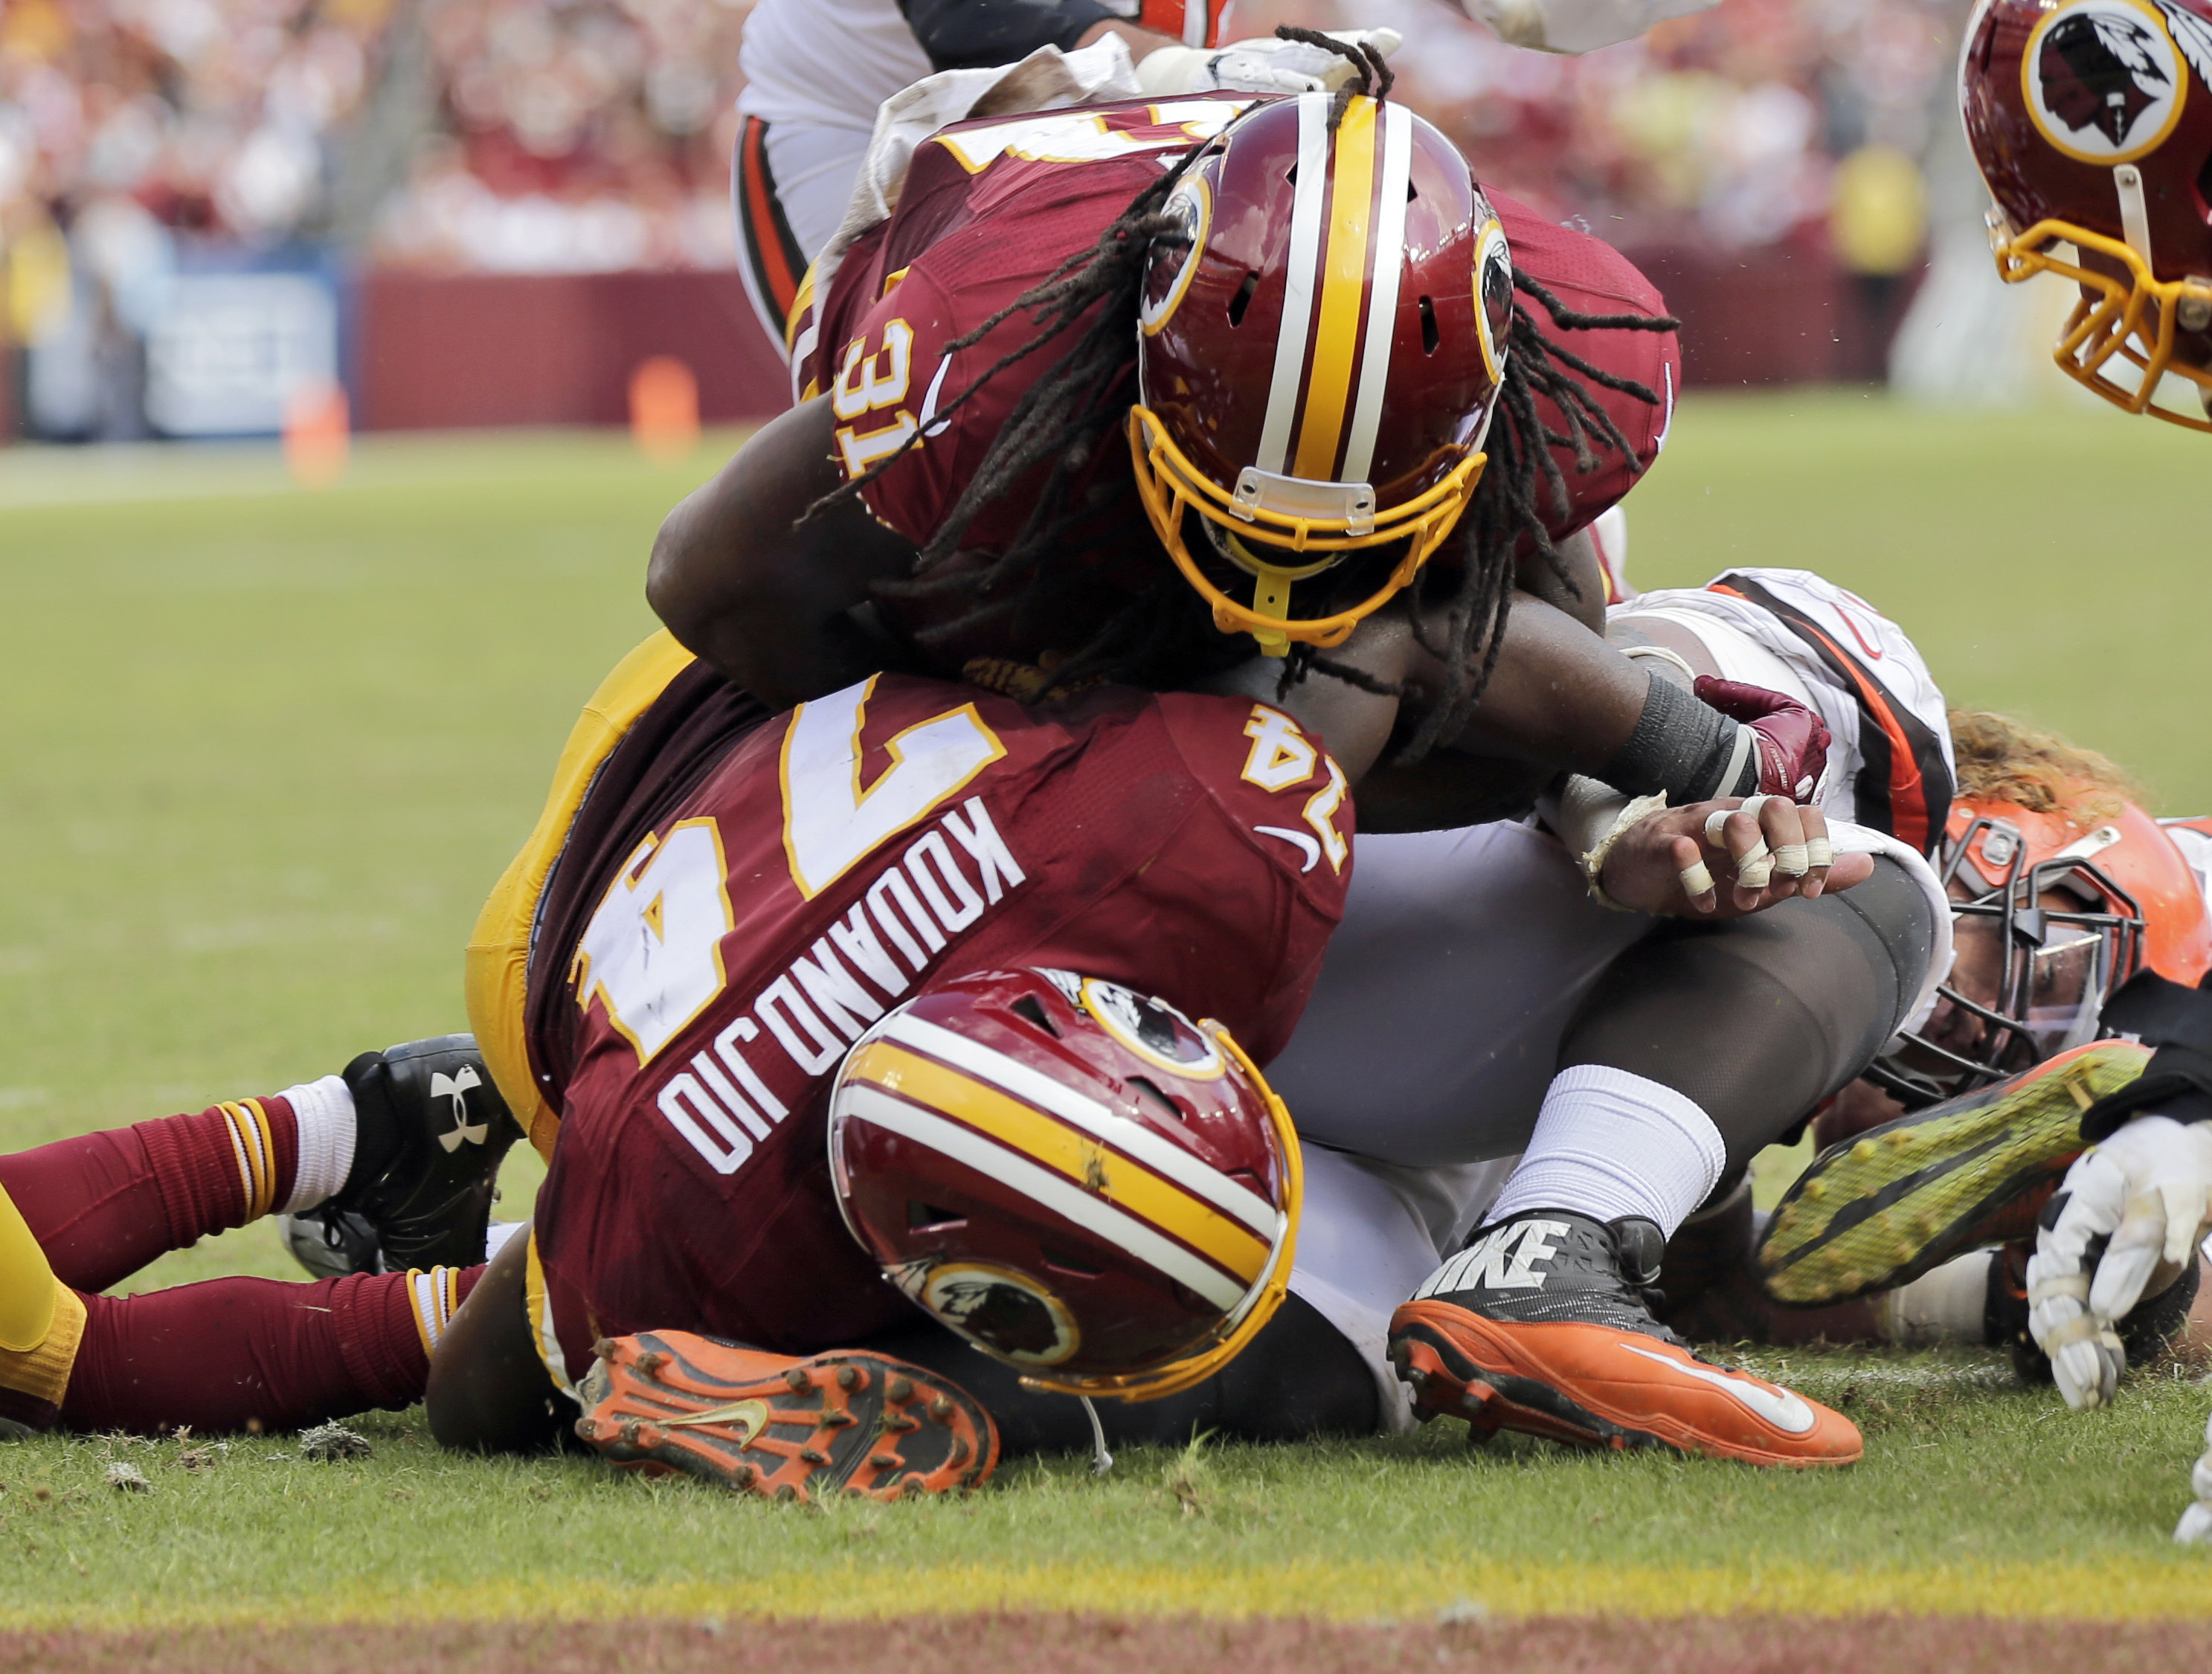 Washington Redskins running back Matt Jones (31) goes over offensive guard Arie Kouandjio (74) and Cleveland Browns nose tackle Danny Shelton for a touchdown during the second half of an NFL football game Sunday, Oct. 2, 2016, in Landover, Md. (AP Photo/M